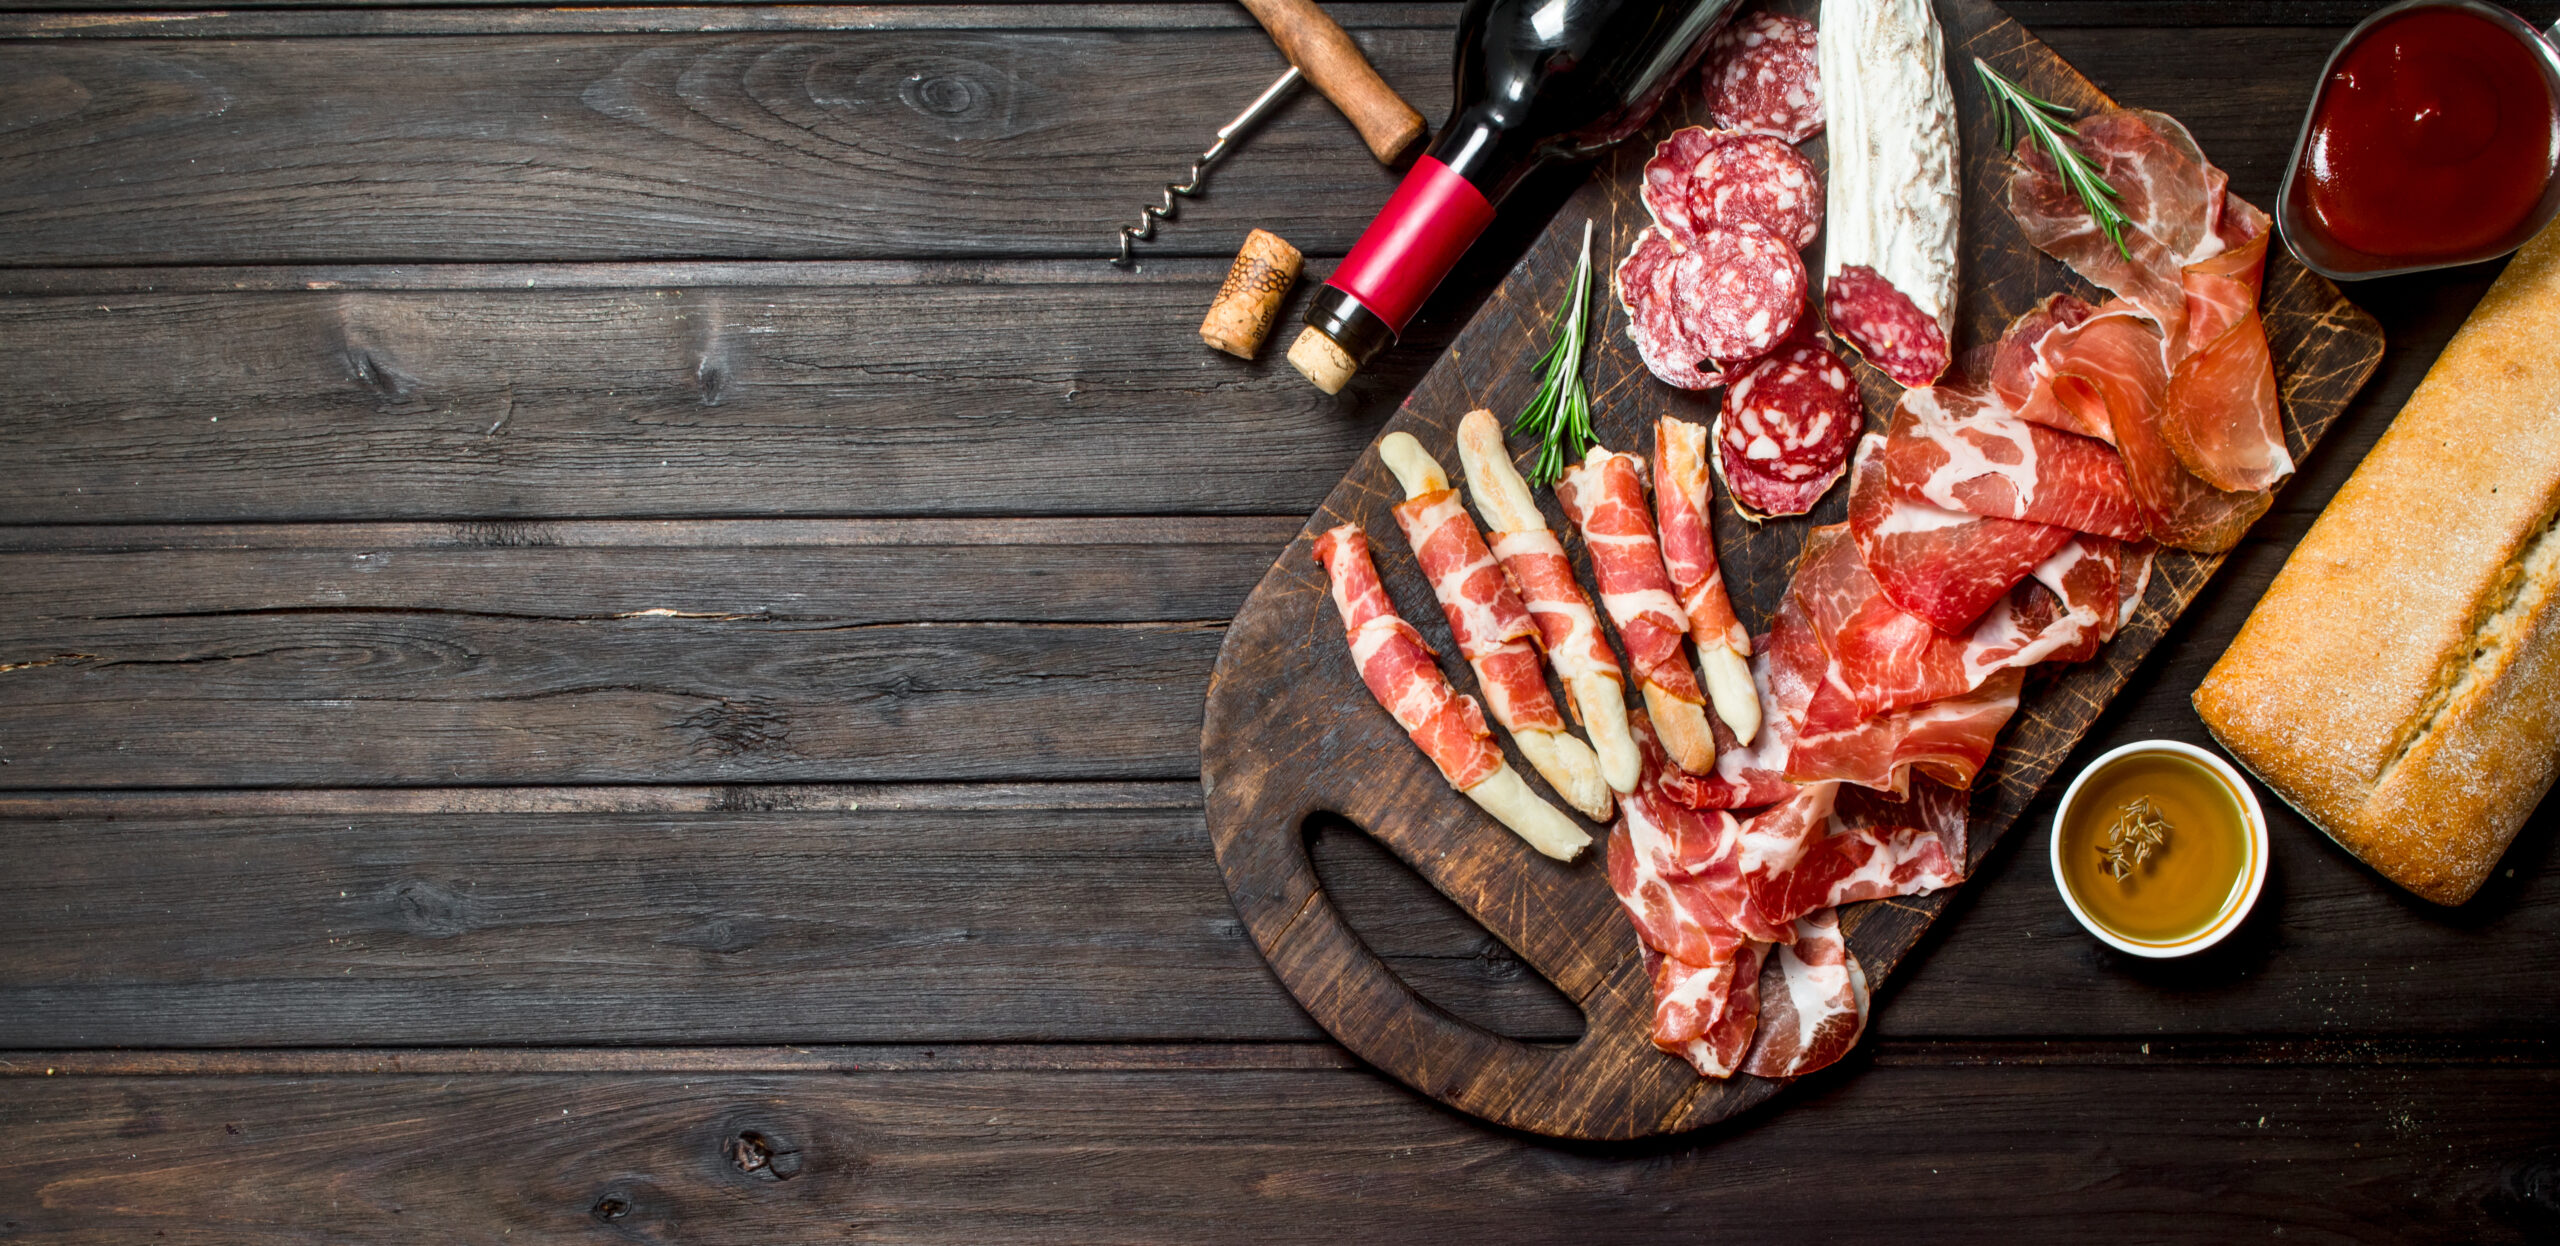 antipasto-background-italian-meat-appetizers-with-EFT4BC7-scaled Chi siamo